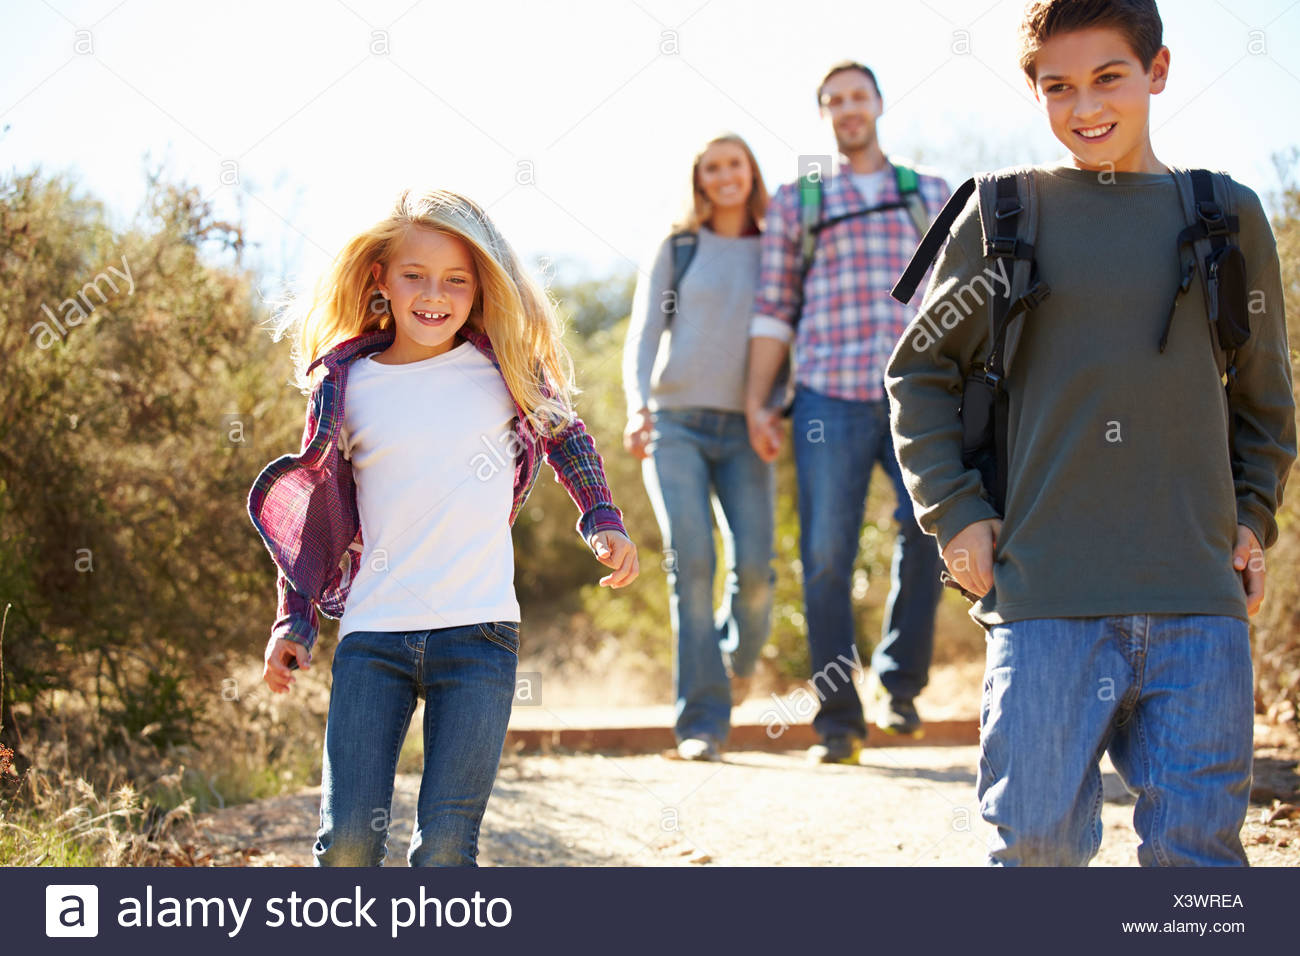 Mother And Children Hiking In Countryside Wearing Backpacks - Stock Image